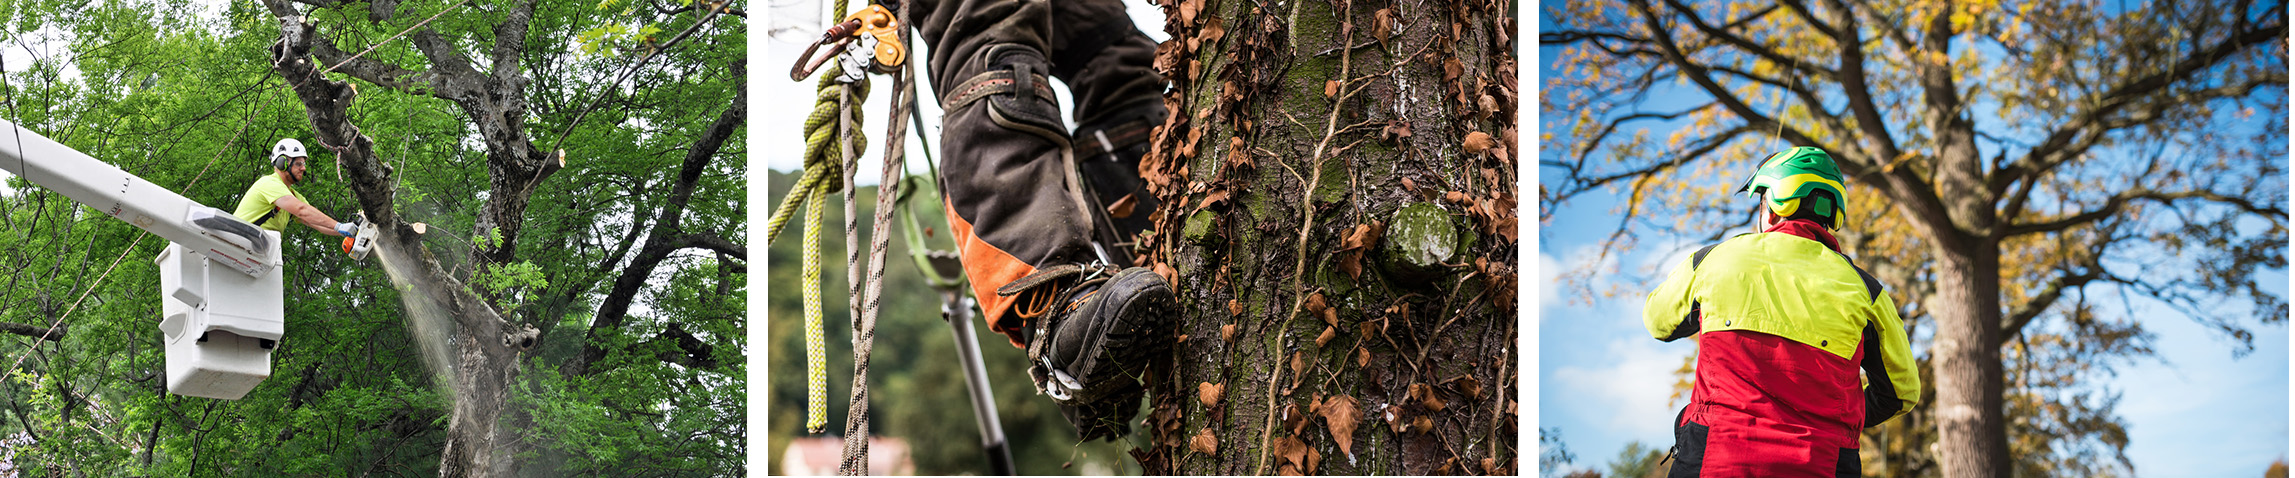 Tree workers